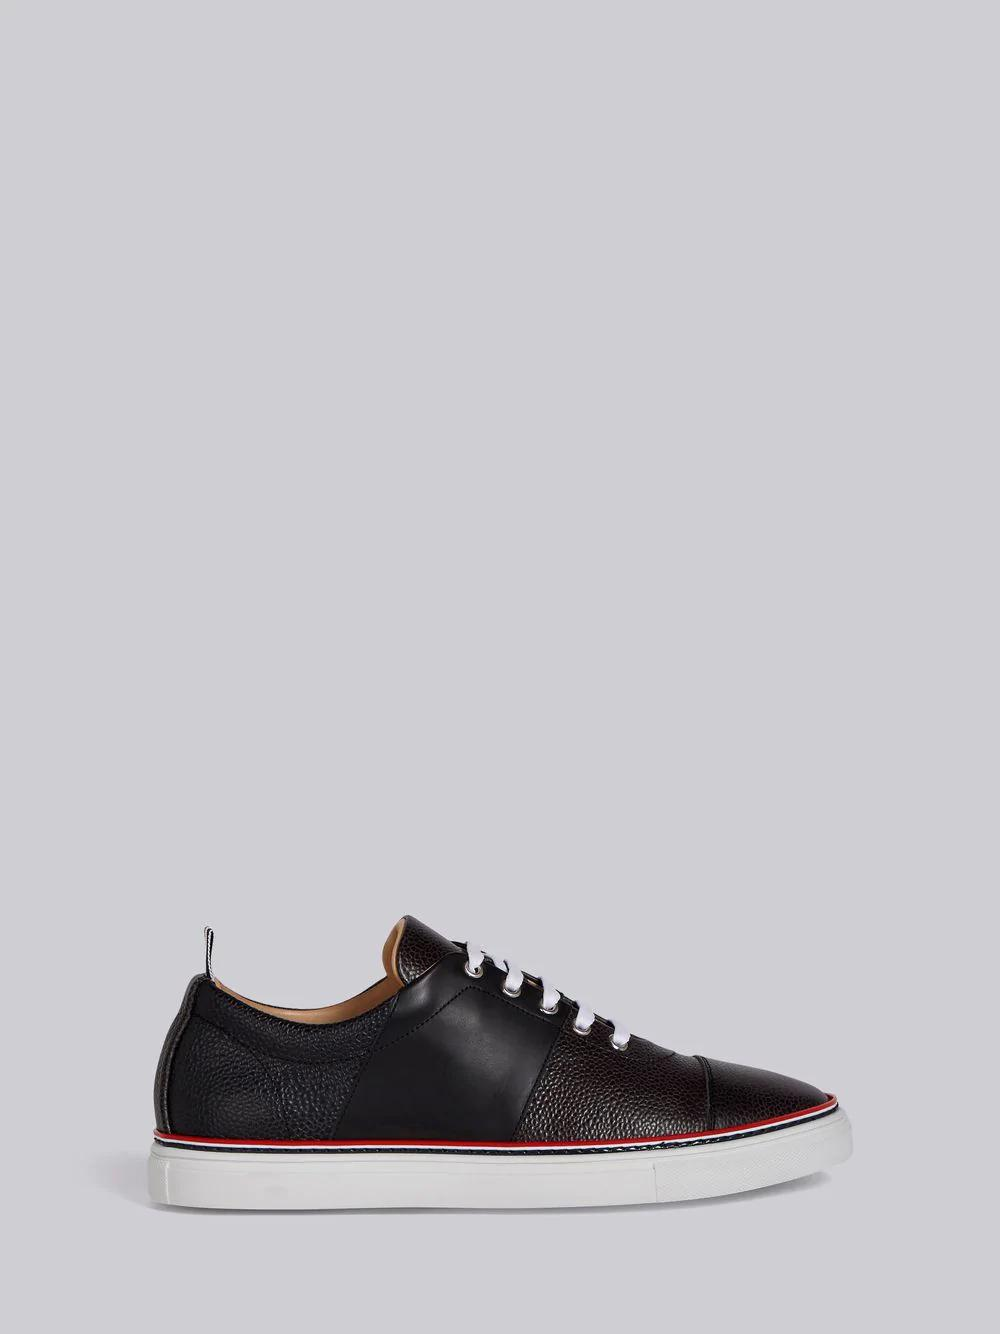 THOM BROWNE THOM BROWNE COLOR-BLOCK PEBBLE GRAIN TRAINER,MFD105A0019812706524